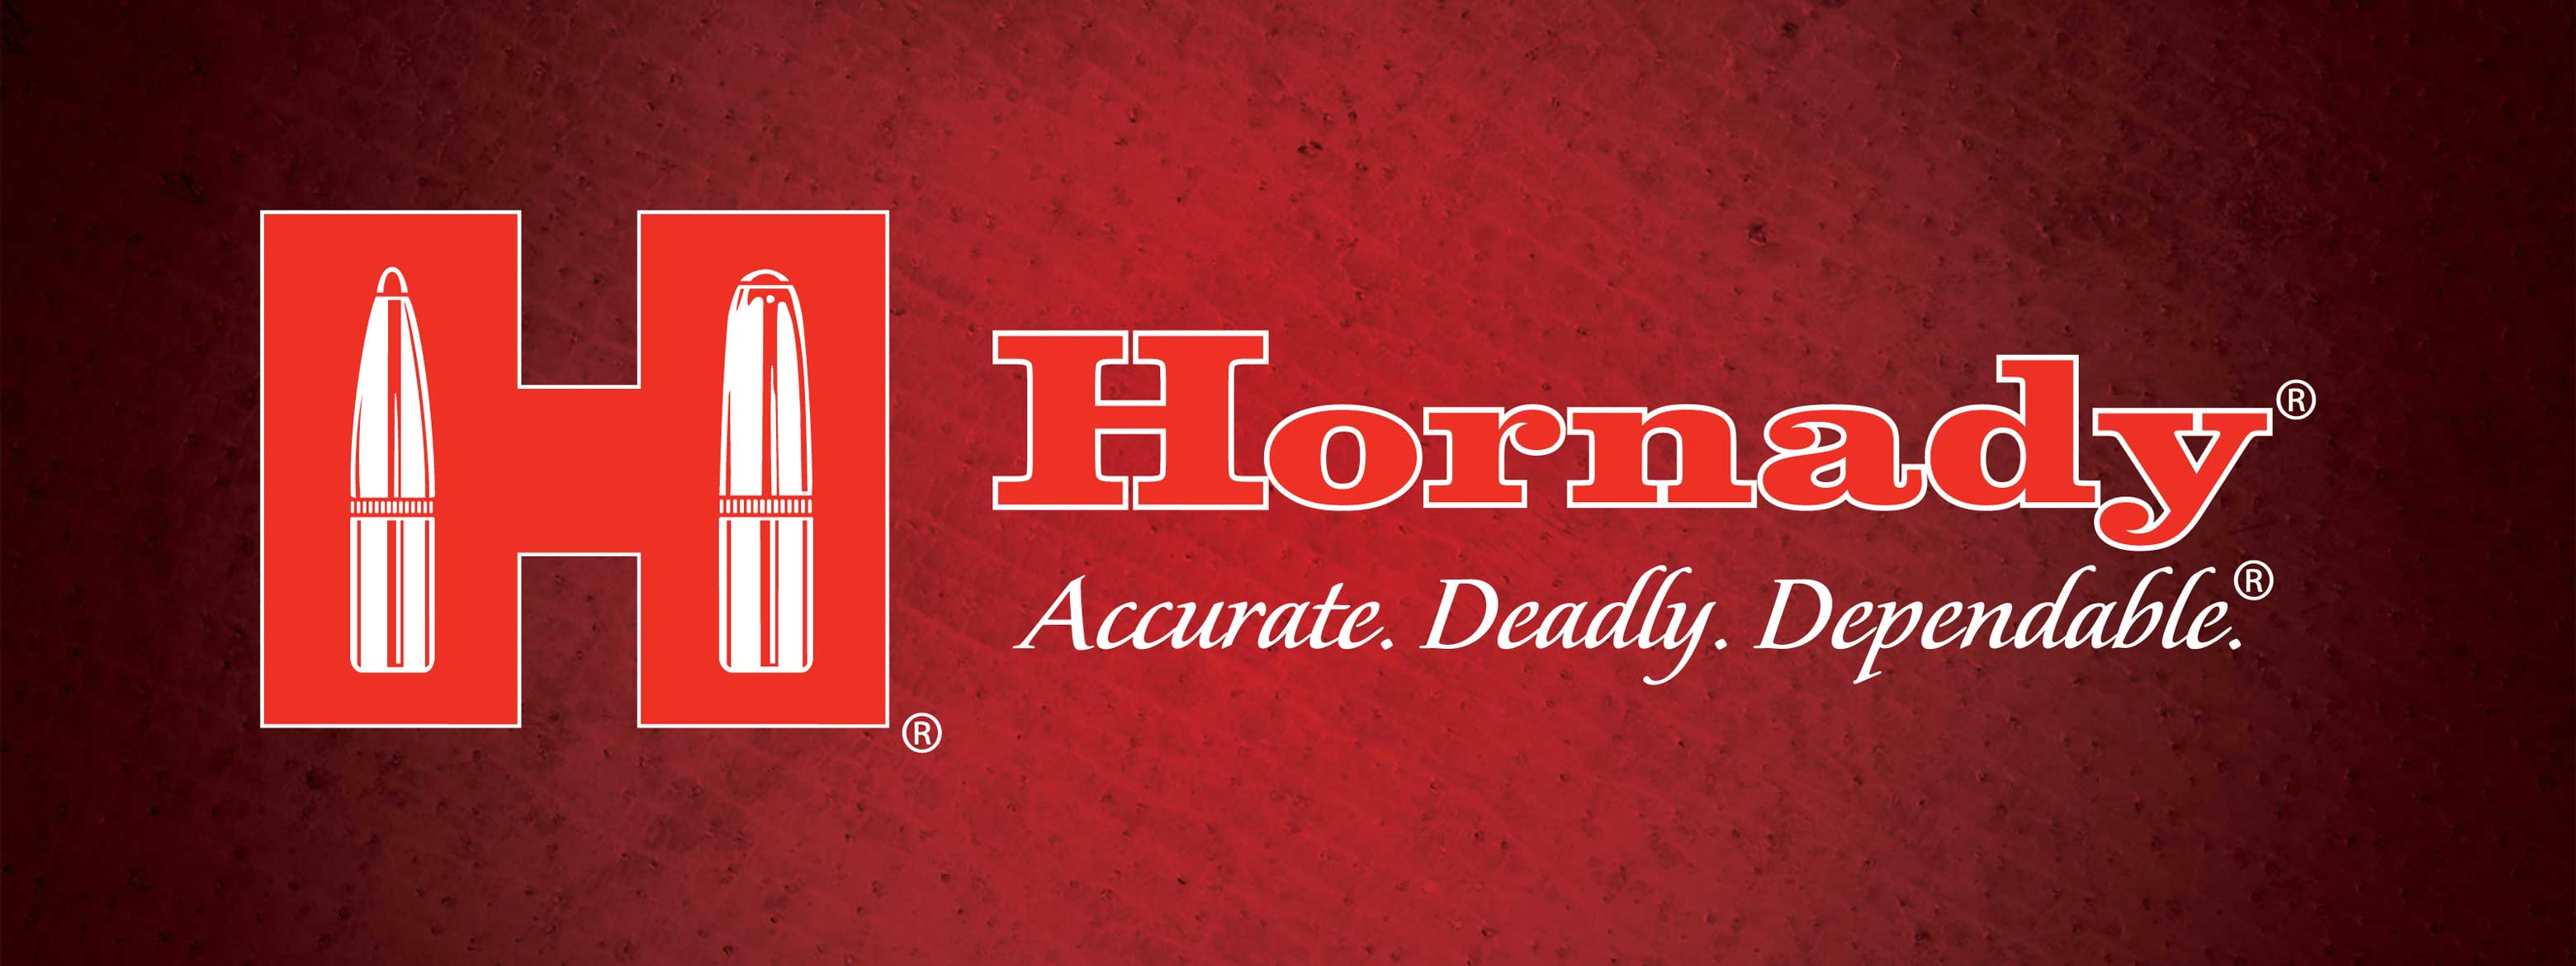 Hornady | Rifle Ammo | Bullets | Reloading Brass -MidwayUSA